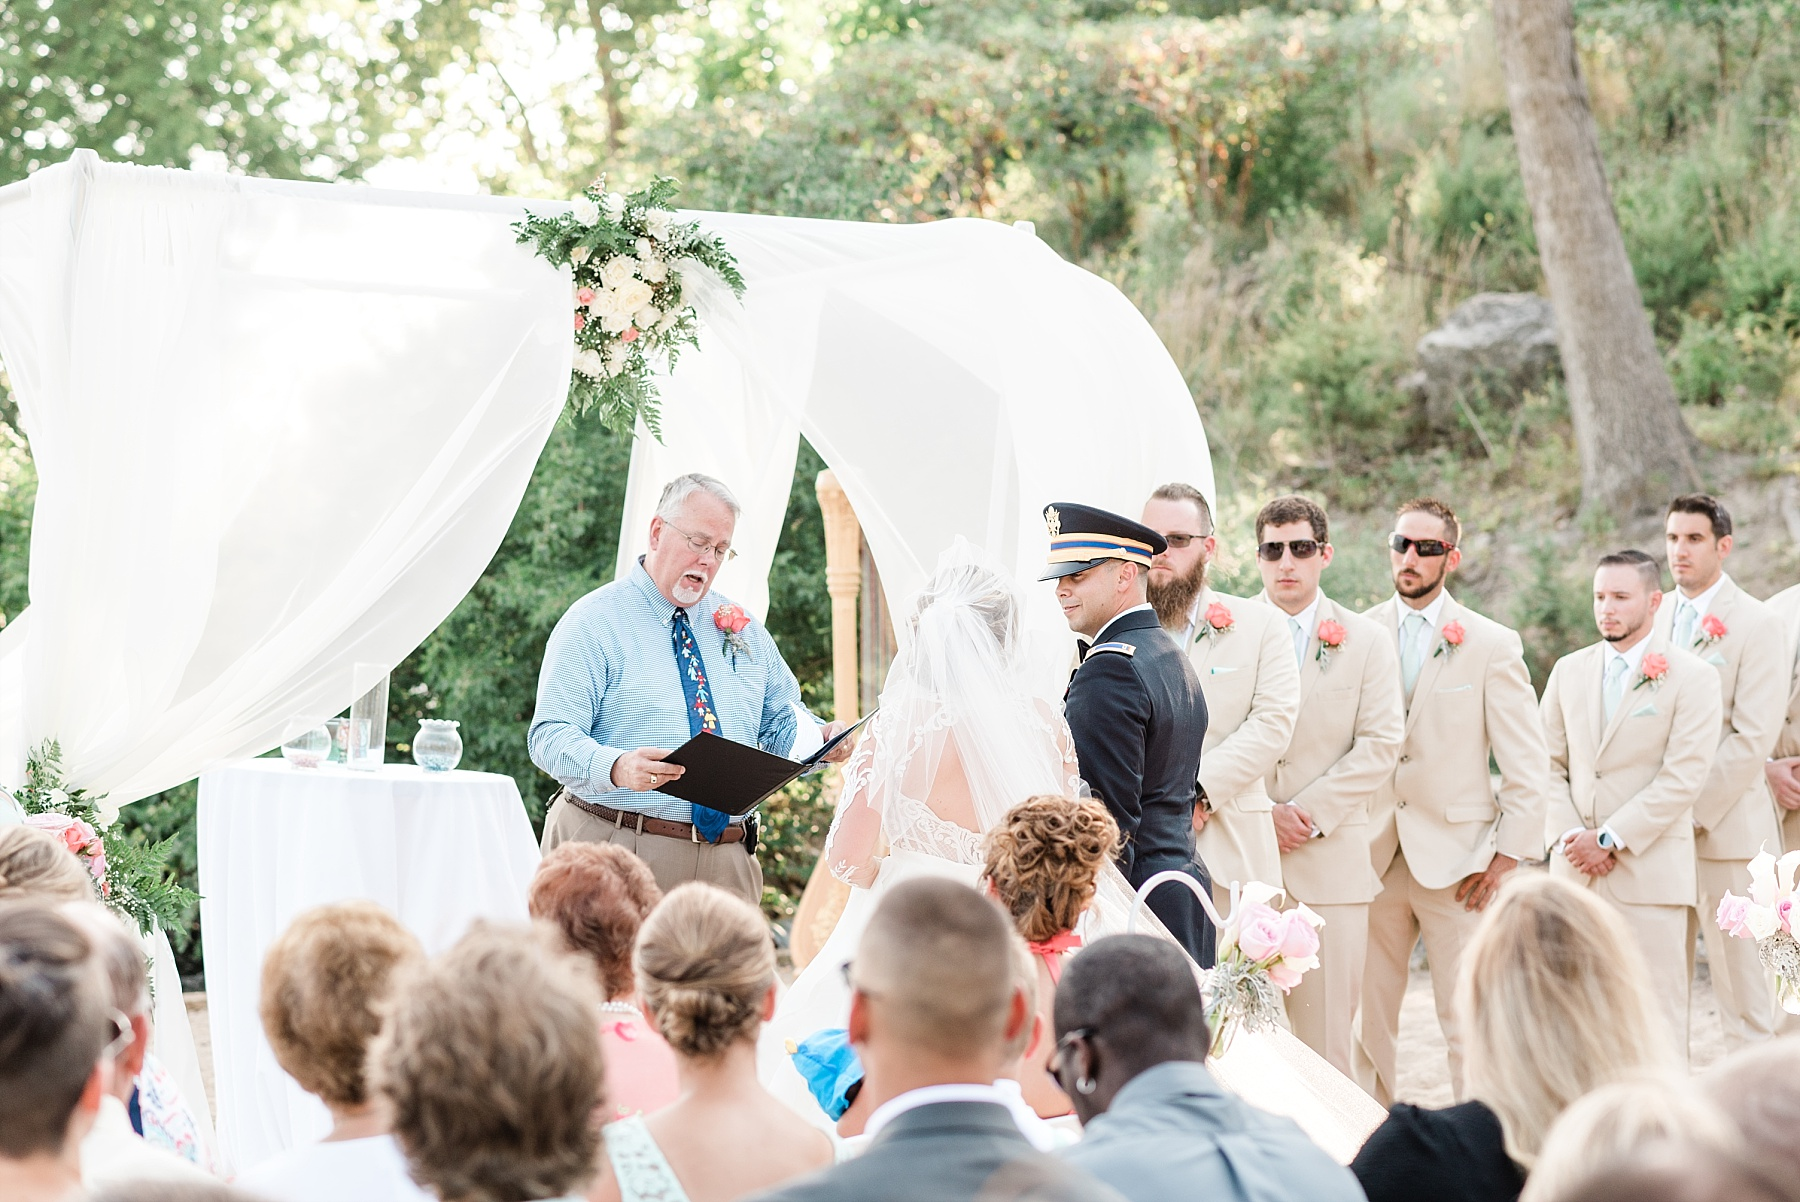 Beachside Sunset Wedding At Lodge Of Four Seasons At Lake Of The Ozarks By Kelsi Kliethermes Photography_0019.jpg